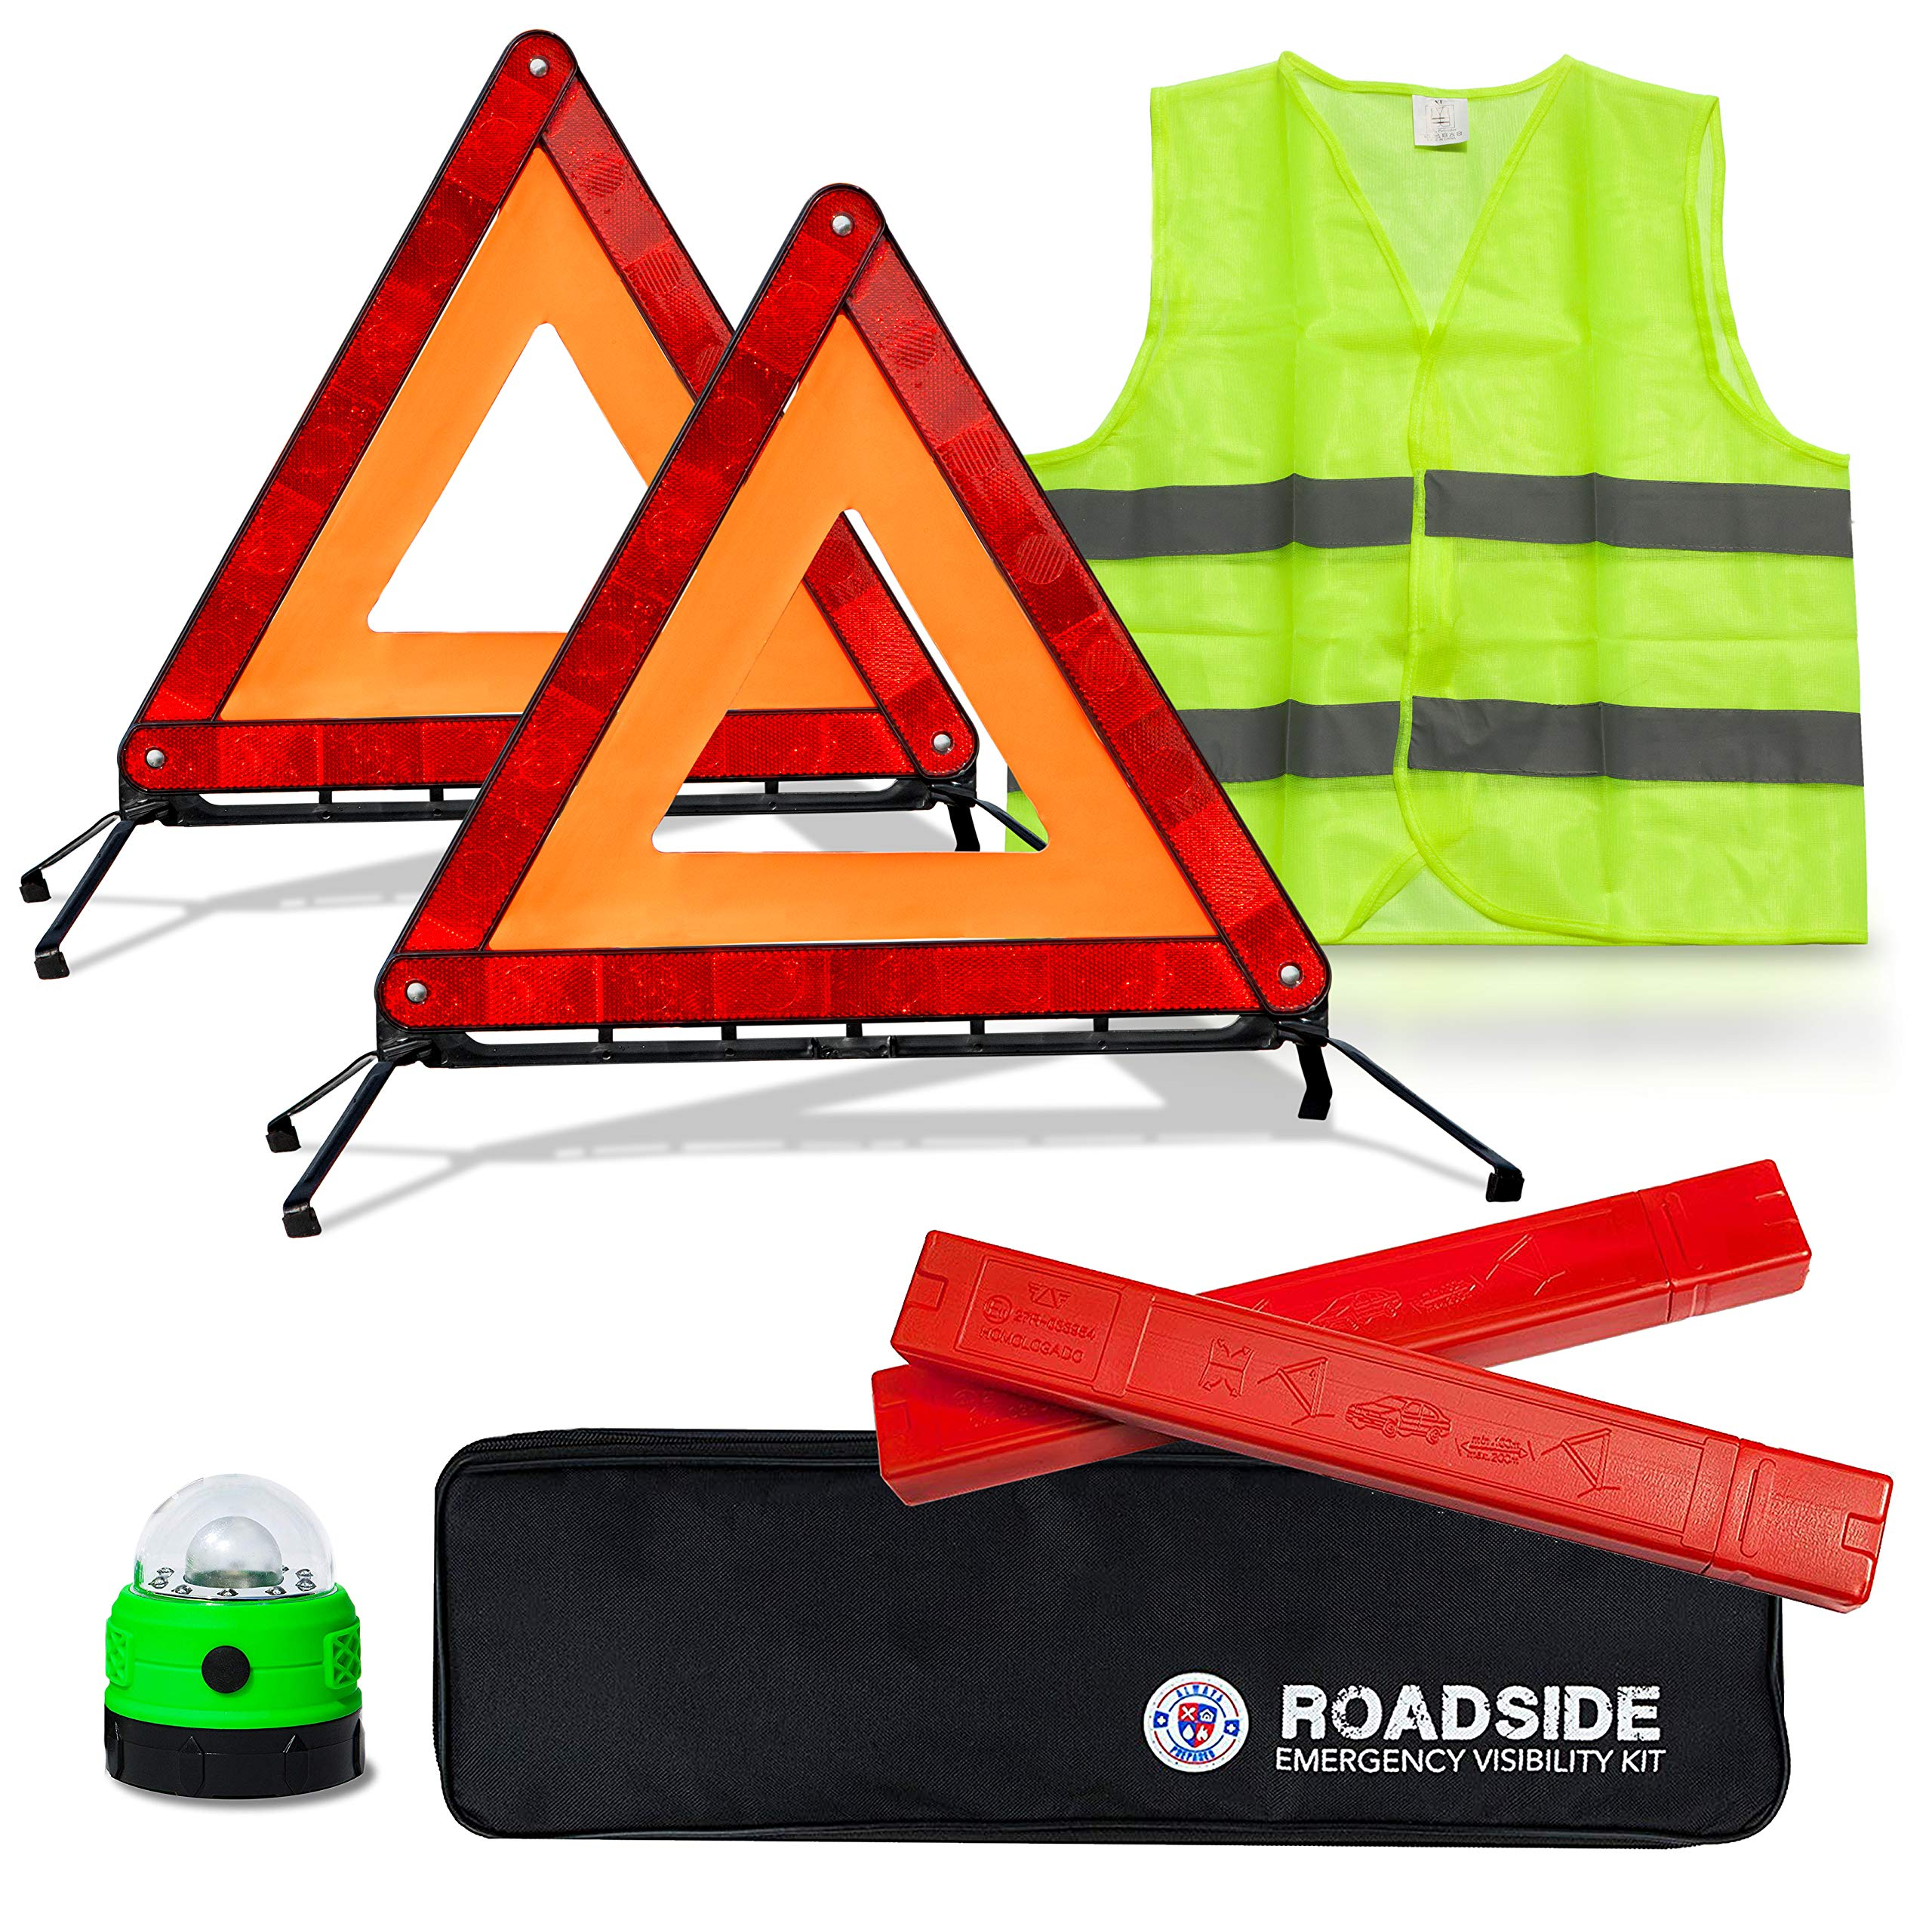 Always Prepared Reflective Car Emergency Roadside Kit for Extra Visibility - Reflective Safety Vests, Roadside Emergency Triangle & LED Light - Roadside Assistance Emergency Kit - Gifts for New Car by Always Prepared